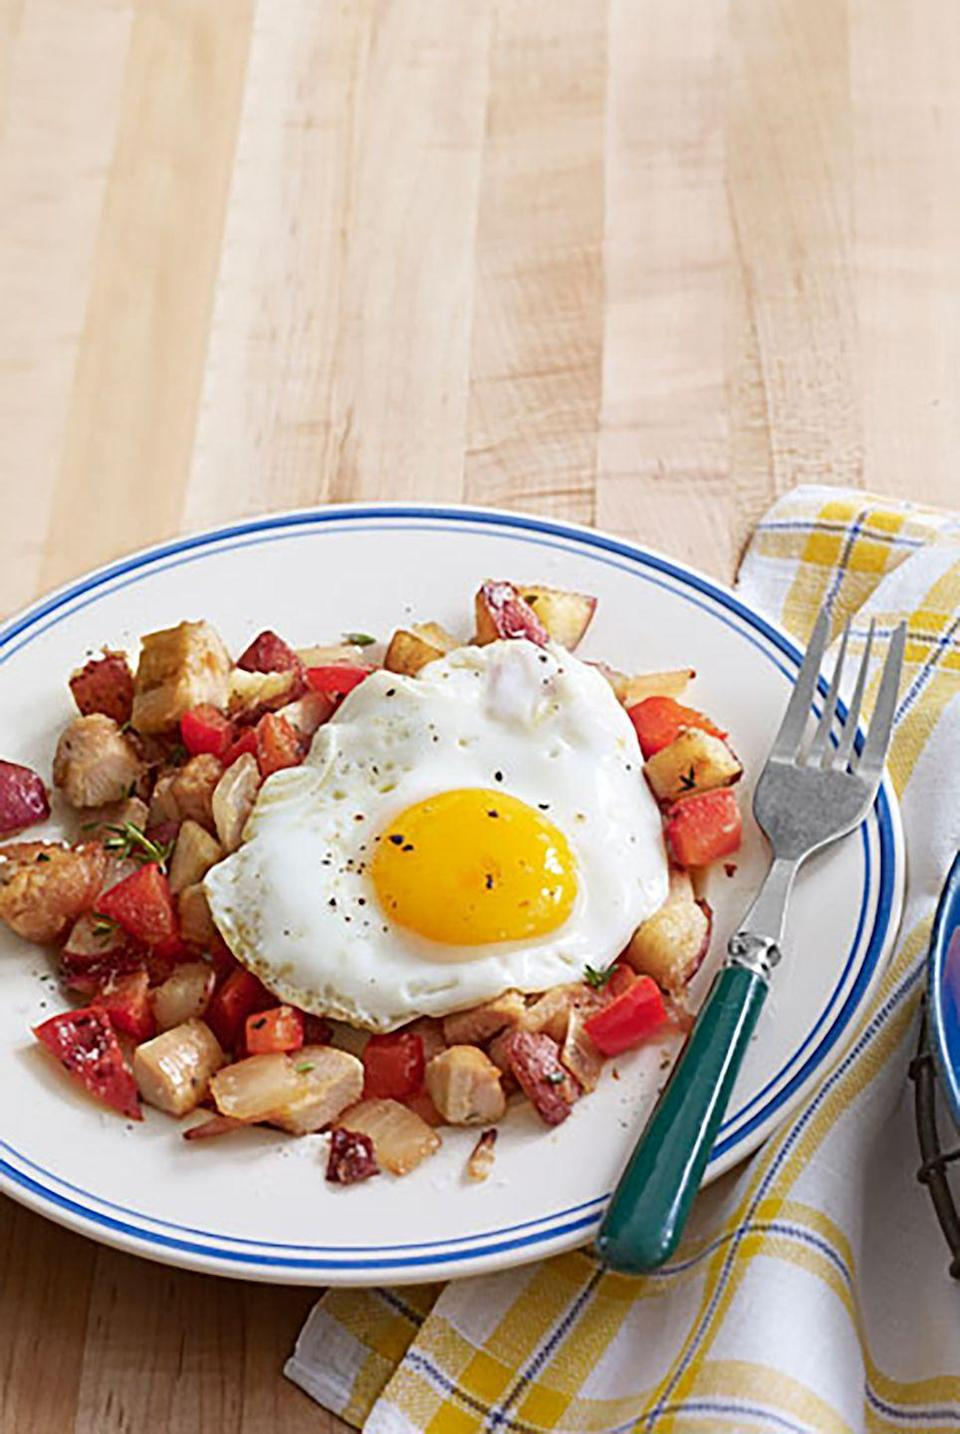 """<p>Replace corned beef with skinless turkey in this hash recipe to create a healthier alternative that your brunch guests will love.</p><p><strong><a href=""""https://www.countryliving.com/food-drinks/recipes/a3717/turkey-hash-sunny-side-up-eggs-recipe-clx1111/"""" rel=""""nofollow noopener"""" target=""""_blank"""" data-ylk=""""slk:Get the recipe"""" class=""""link rapid-noclick-resp"""">Get the recipe</a>.</strong></p>"""